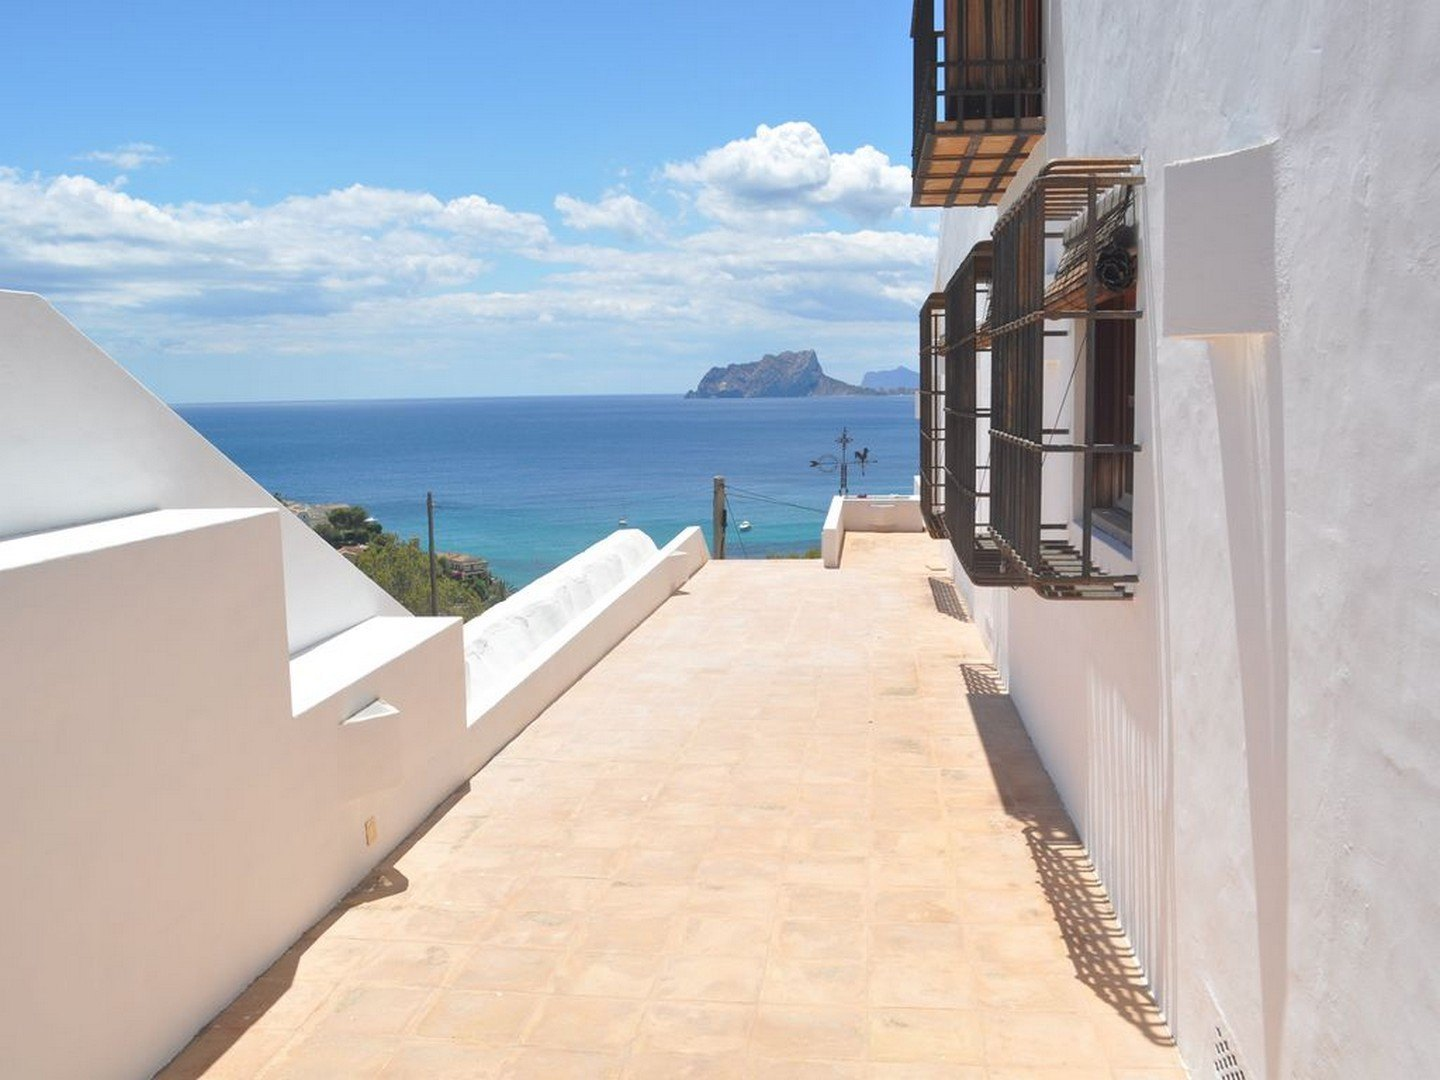 Fotogalería - 5 - Build a villa in Moraira: villas for sale in Moraira